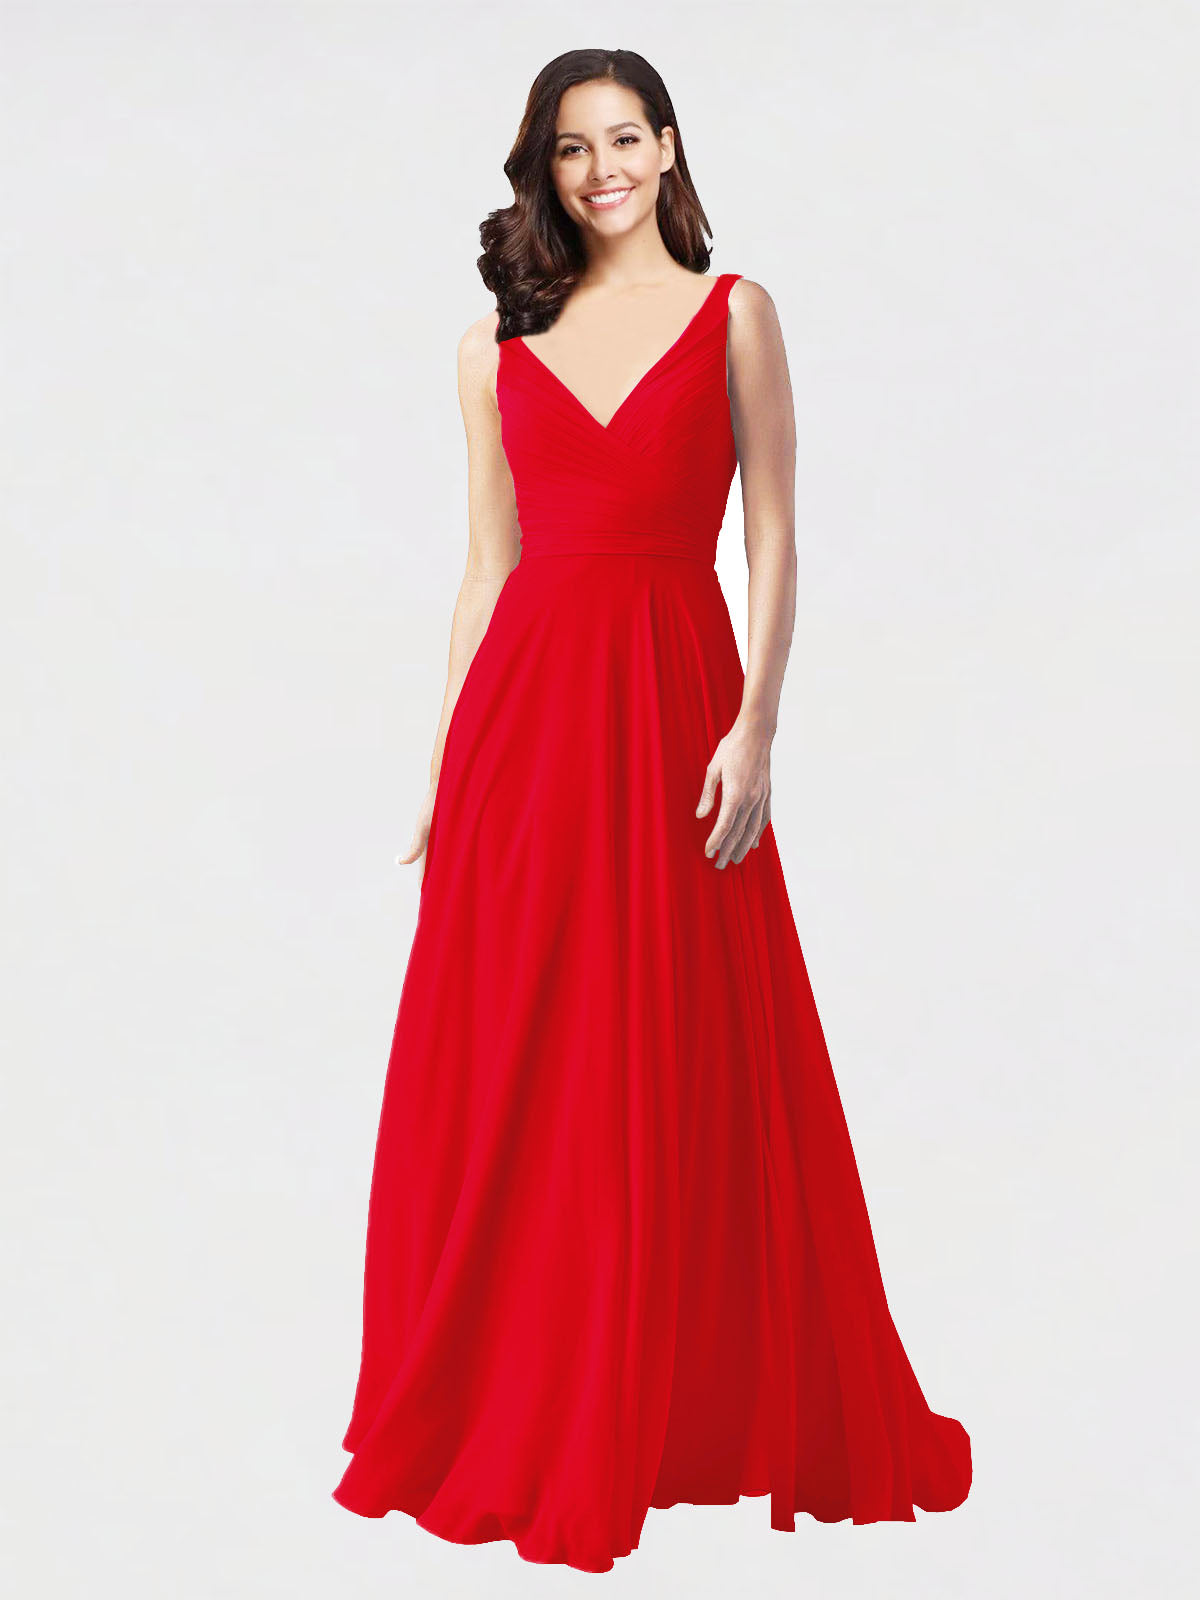 Long A-Line V-Neck Sleeveless Red Chiffon Bridesmaid Dress Bernice